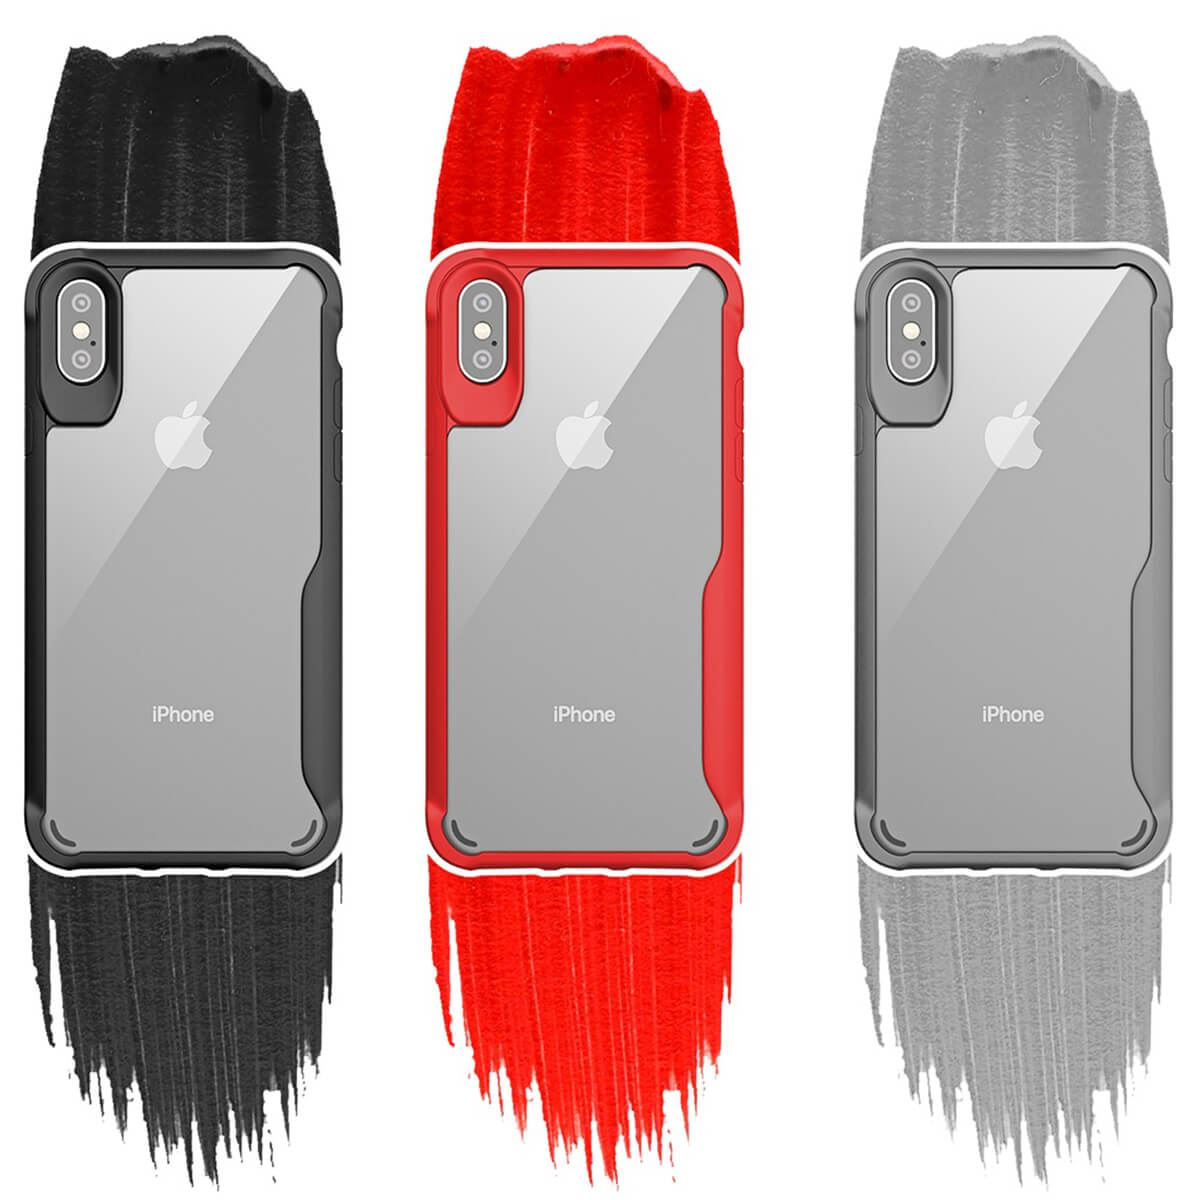 Thin-Shockproof-Case-For-Apple-iPhone-X-8-7-Plus-6s-Clear-Hard-Bumper-TPU-Cover thumbnail 5